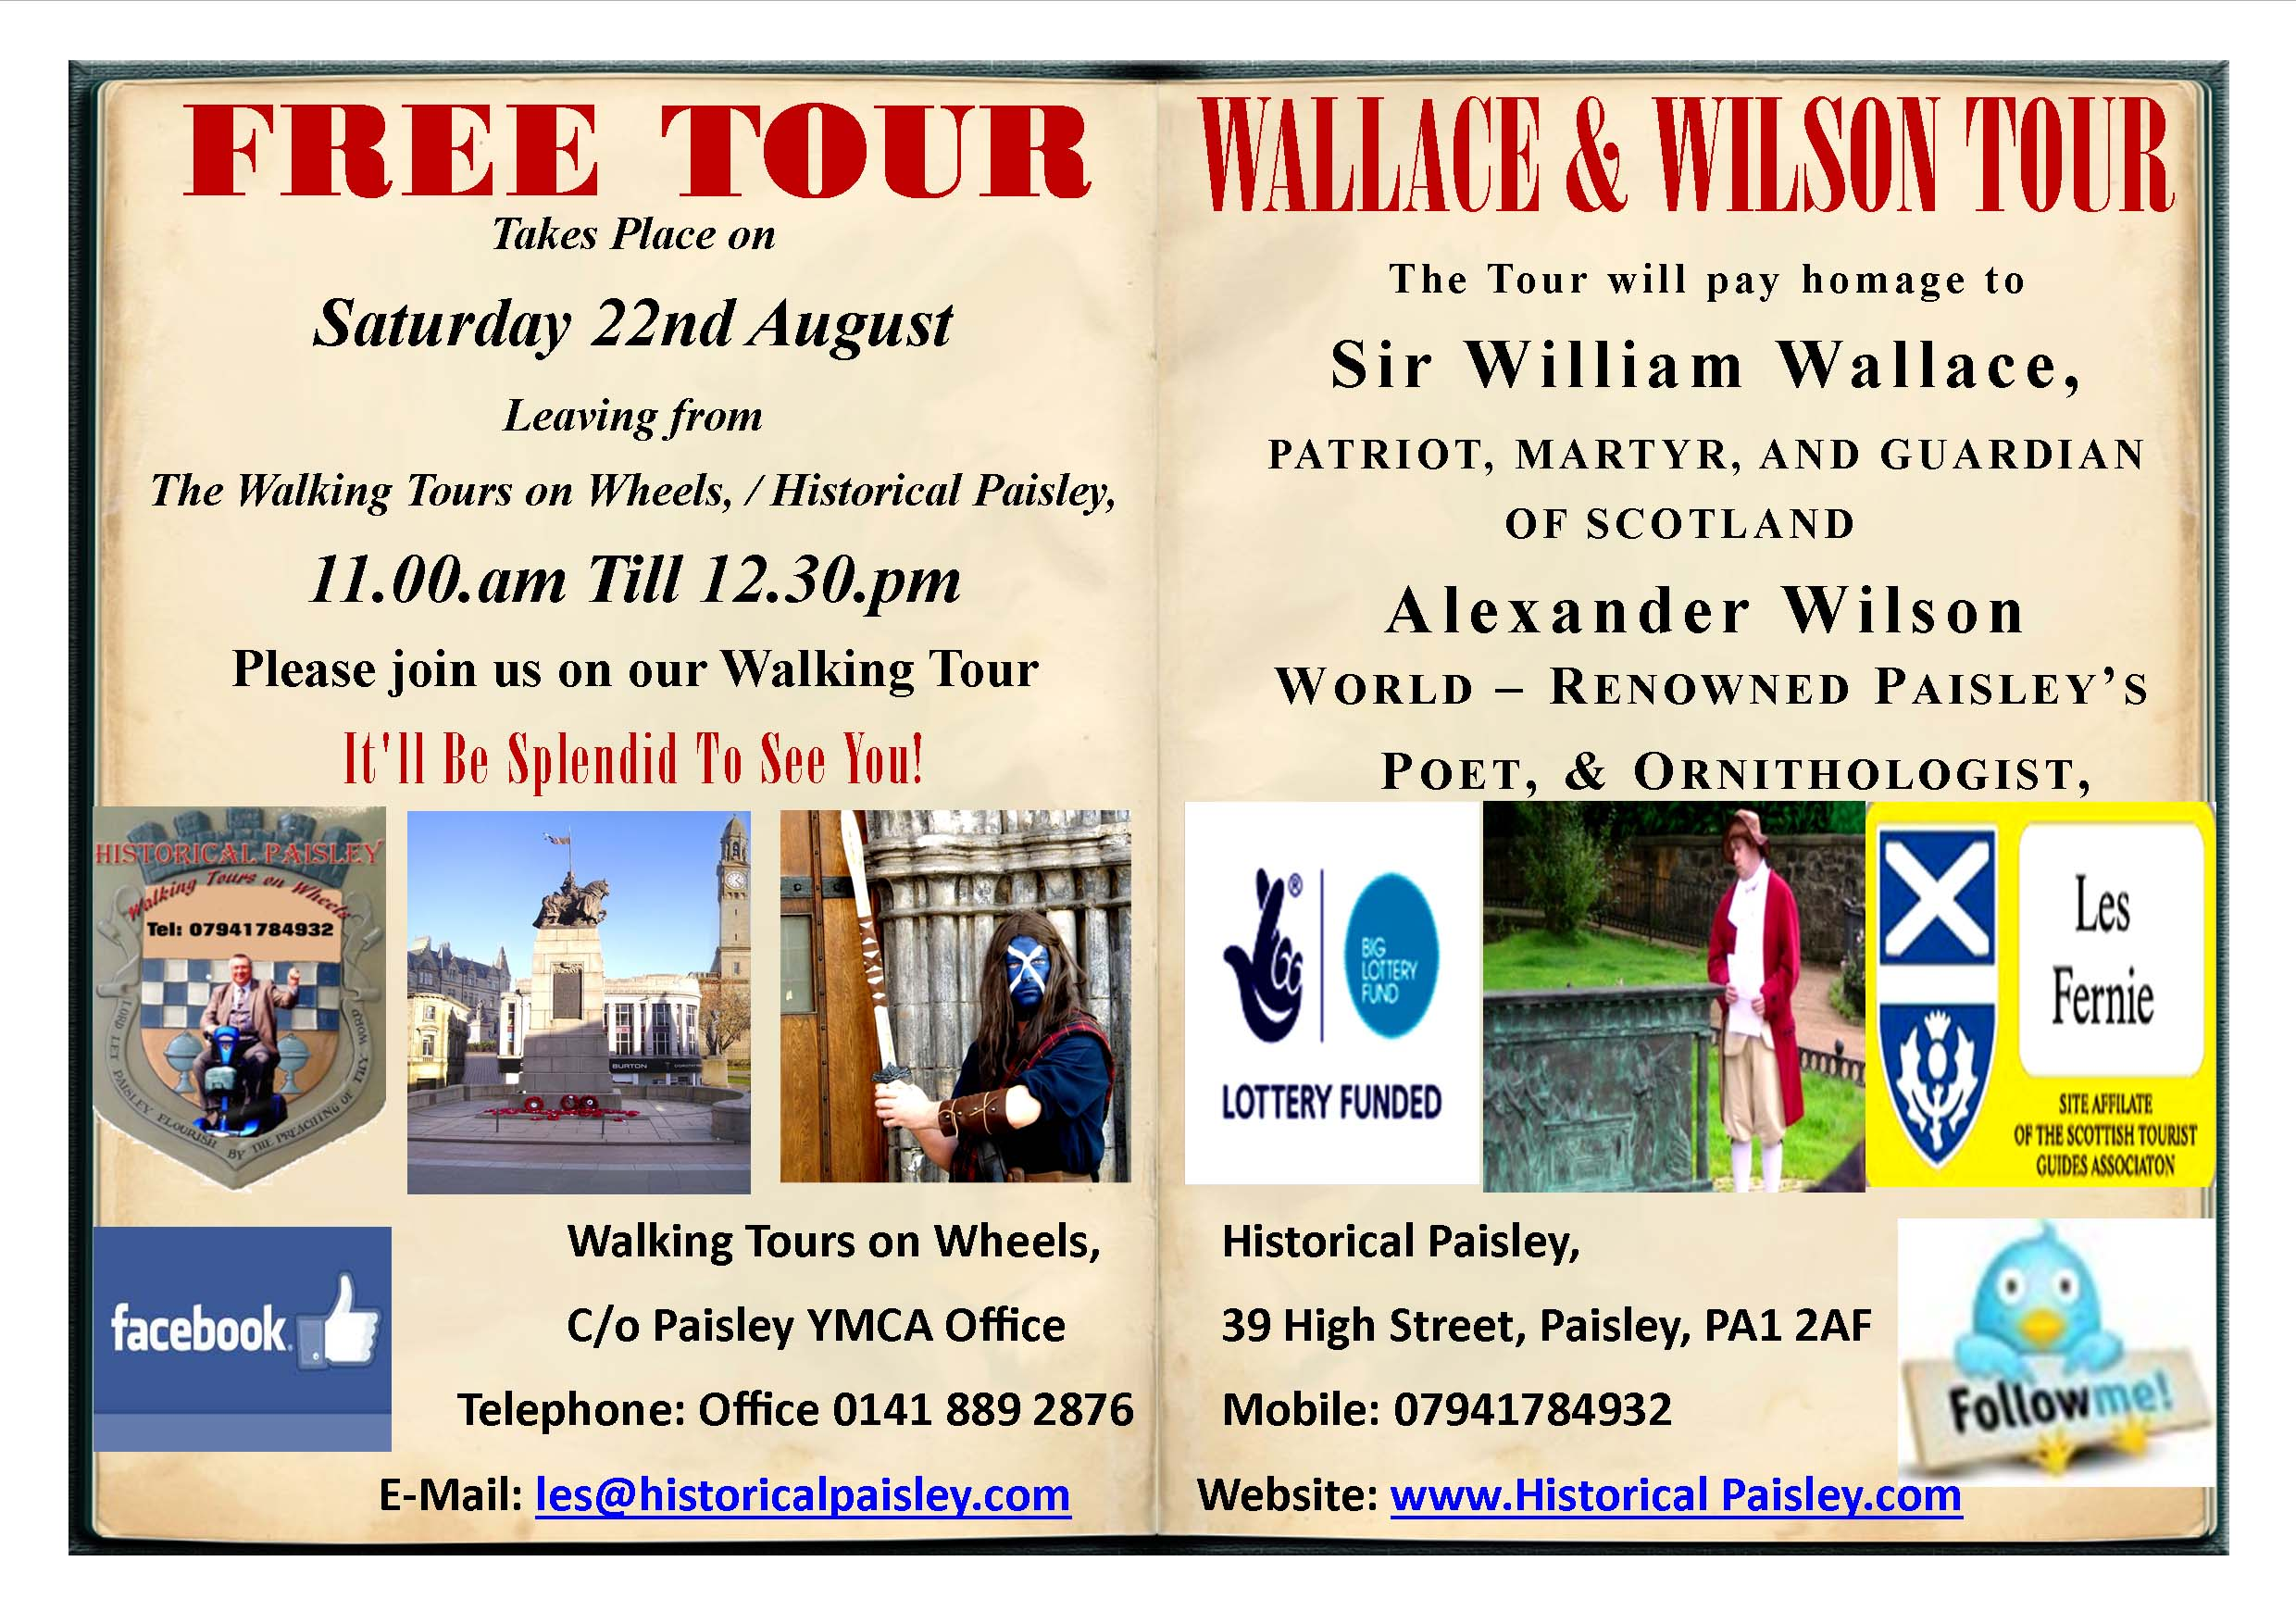 We welcome visitors to come along and see Live performances by actors in costume Paisley's Buddies actors will give you an insight into the life of William Wallace, and Alexander Wilson